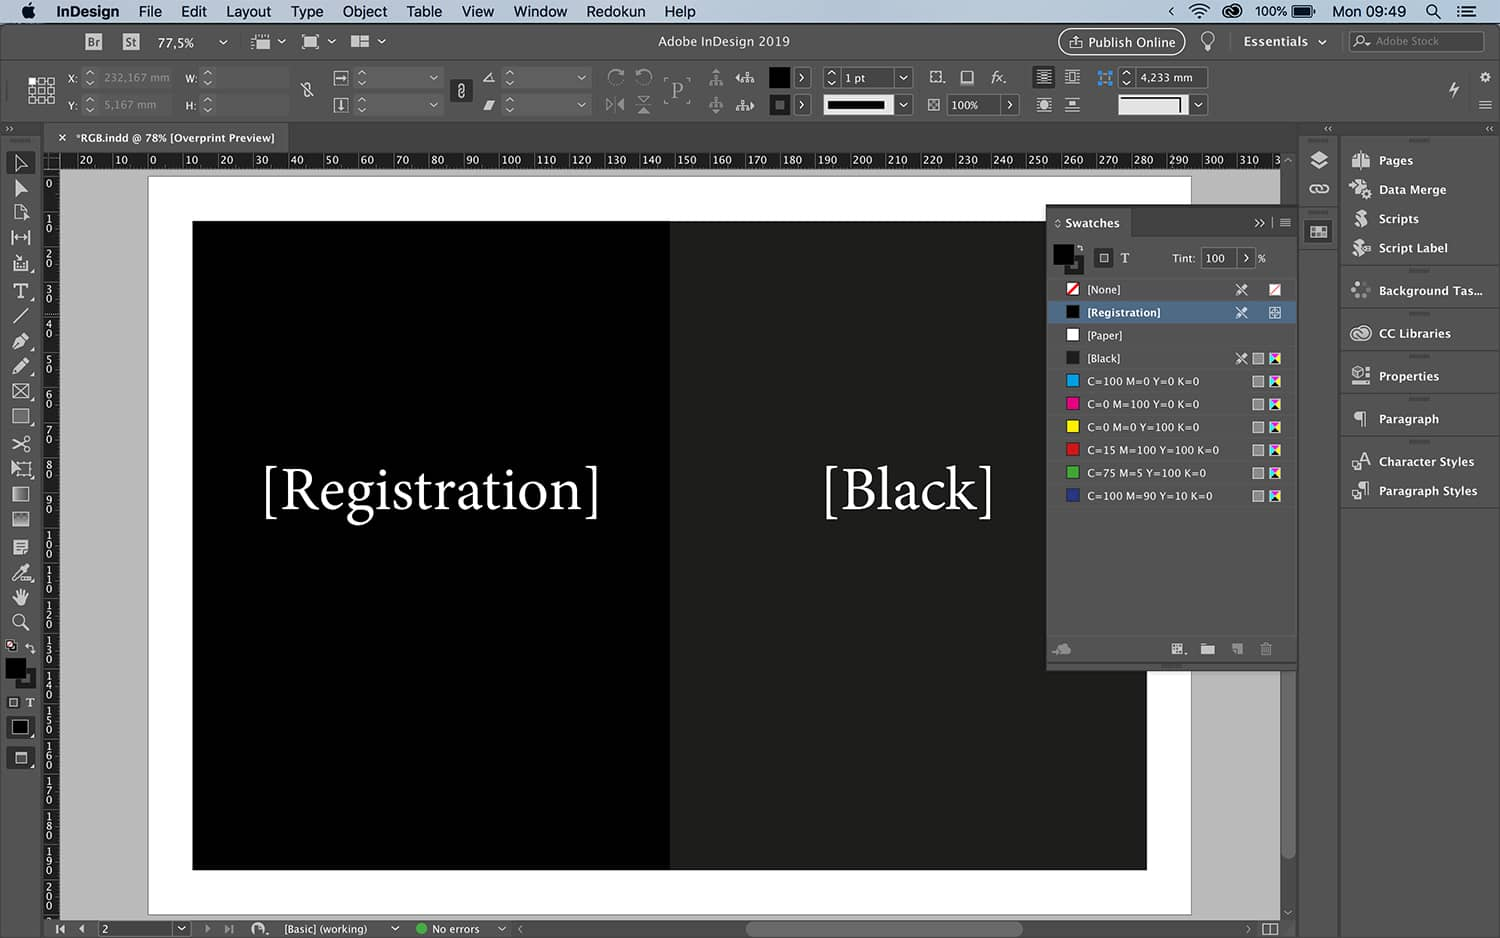 Difference between Registration and Black